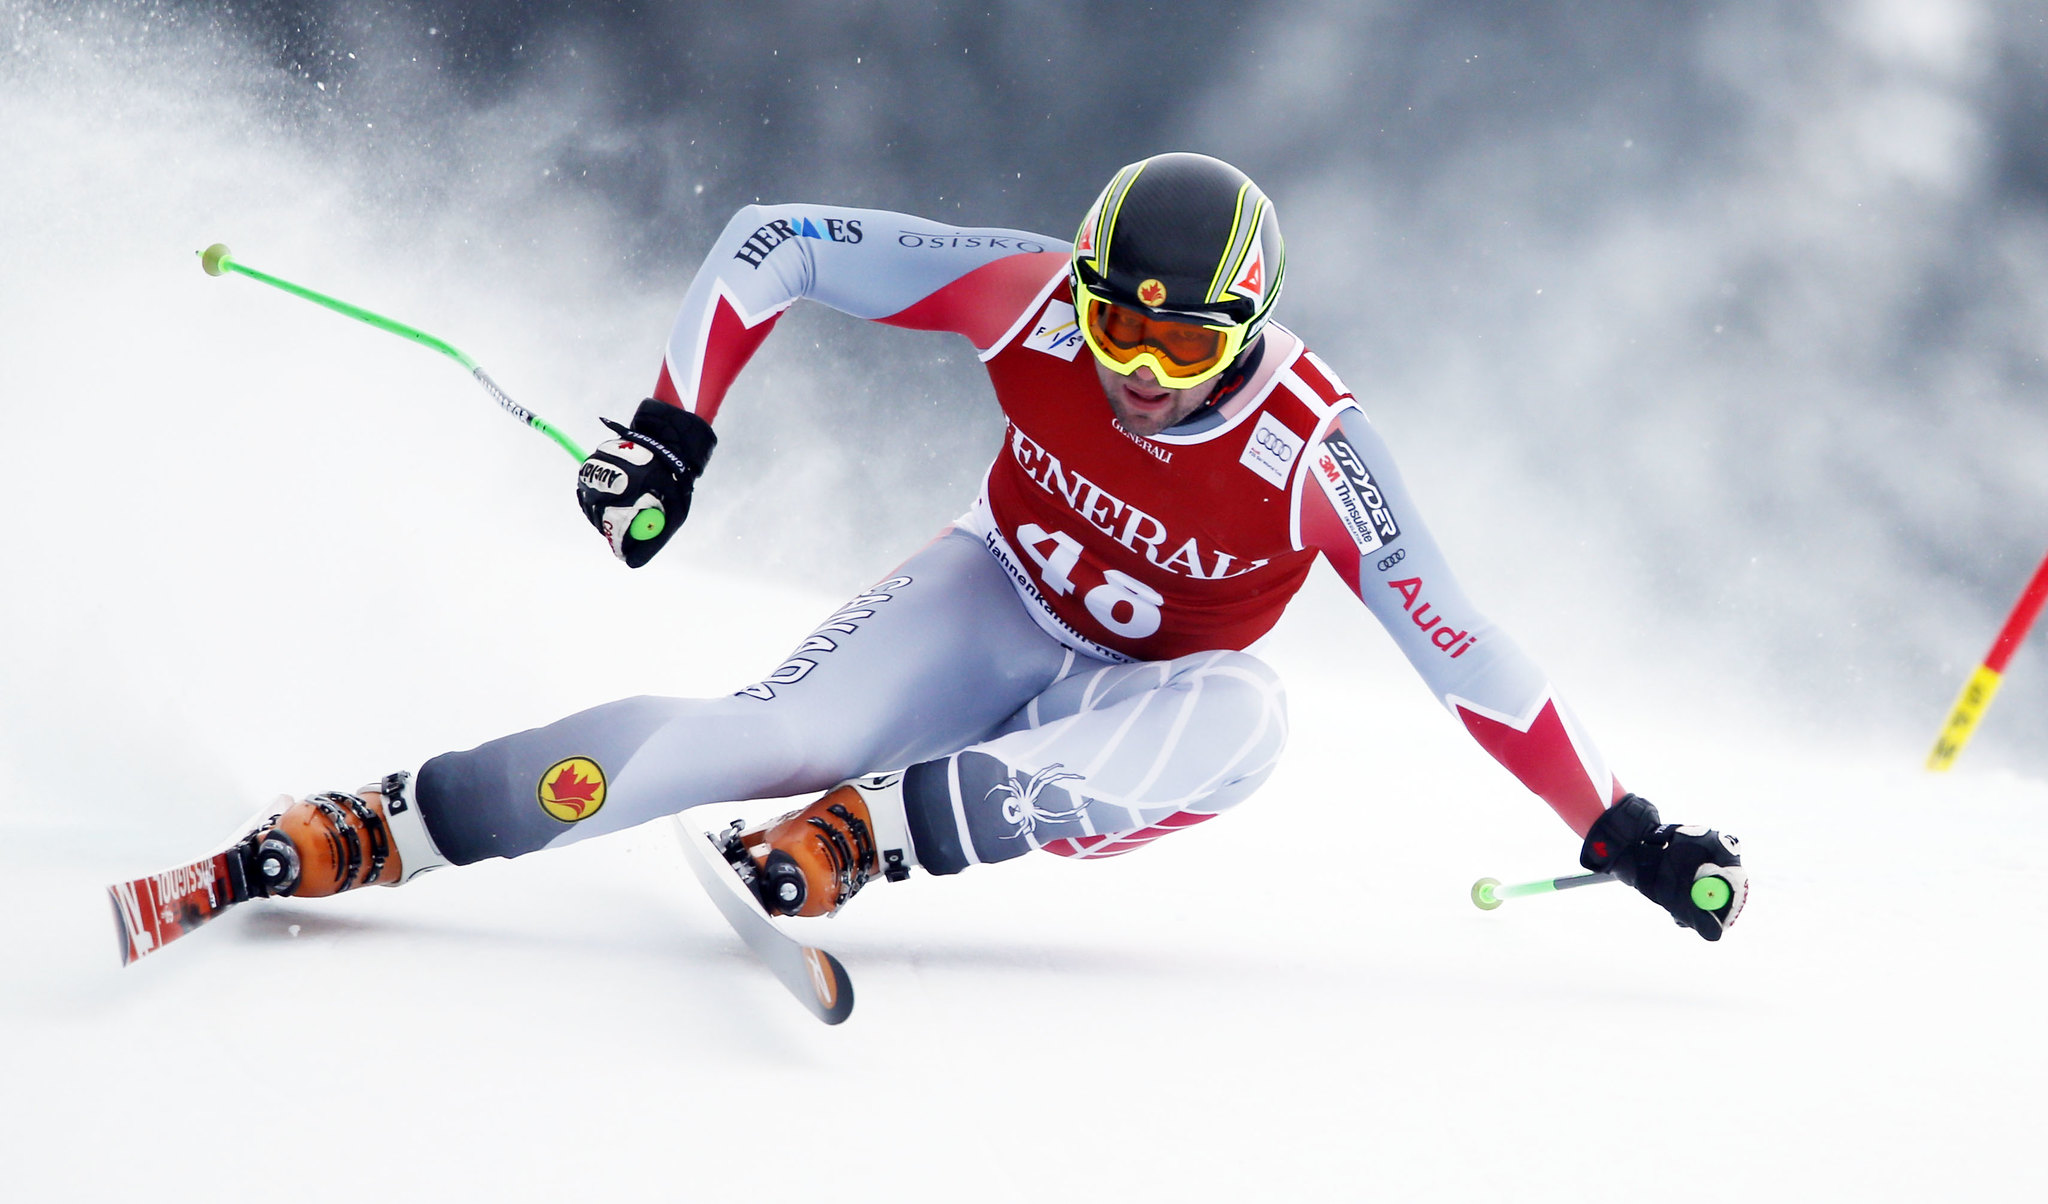 Manuel Osborne-Paradis carves hard in the Kitzbühel super-G.